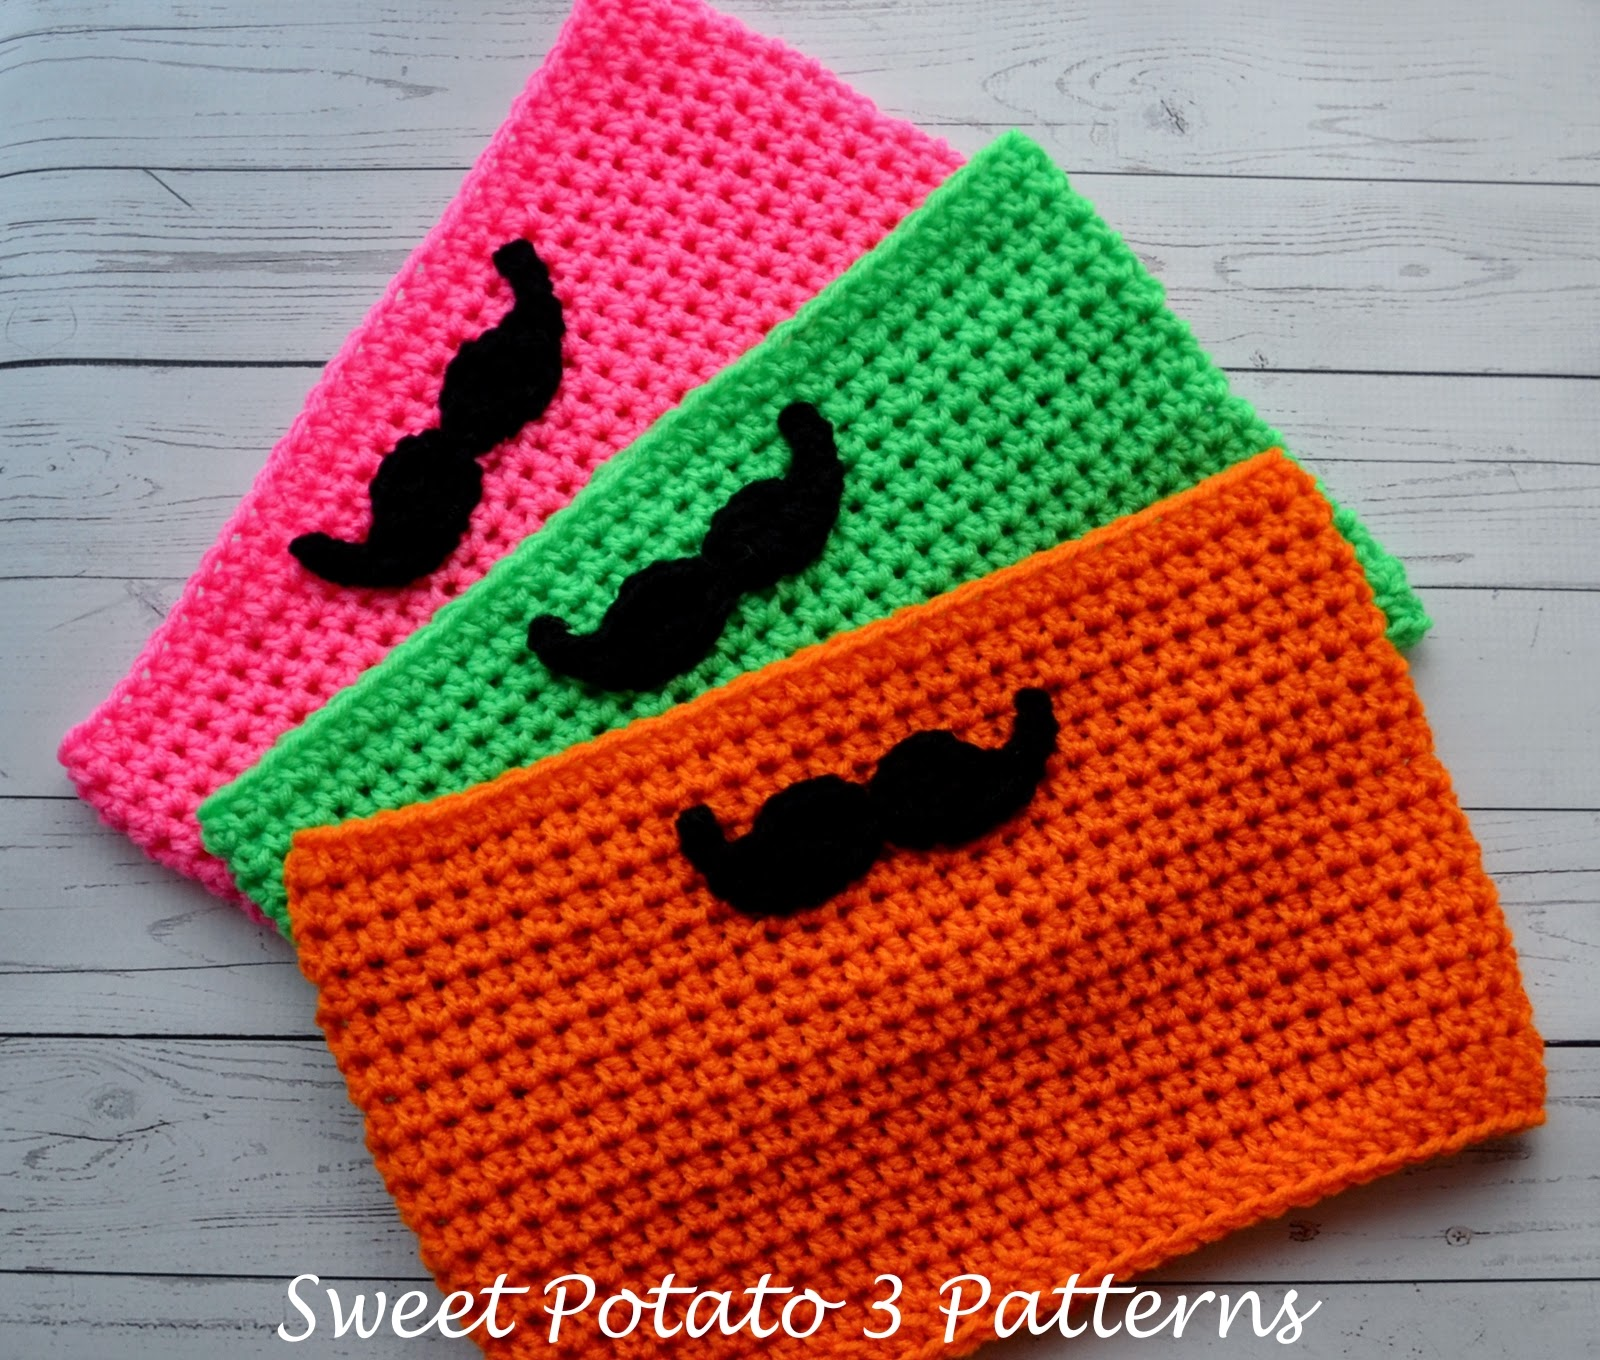 Free mustache cowl crochet pattern sweet potato 3 for the mustache i used the pattern by tutus tea parties again i used worsted weight yarn but used a crochet hook k 65 mm instead of what was bankloansurffo Images